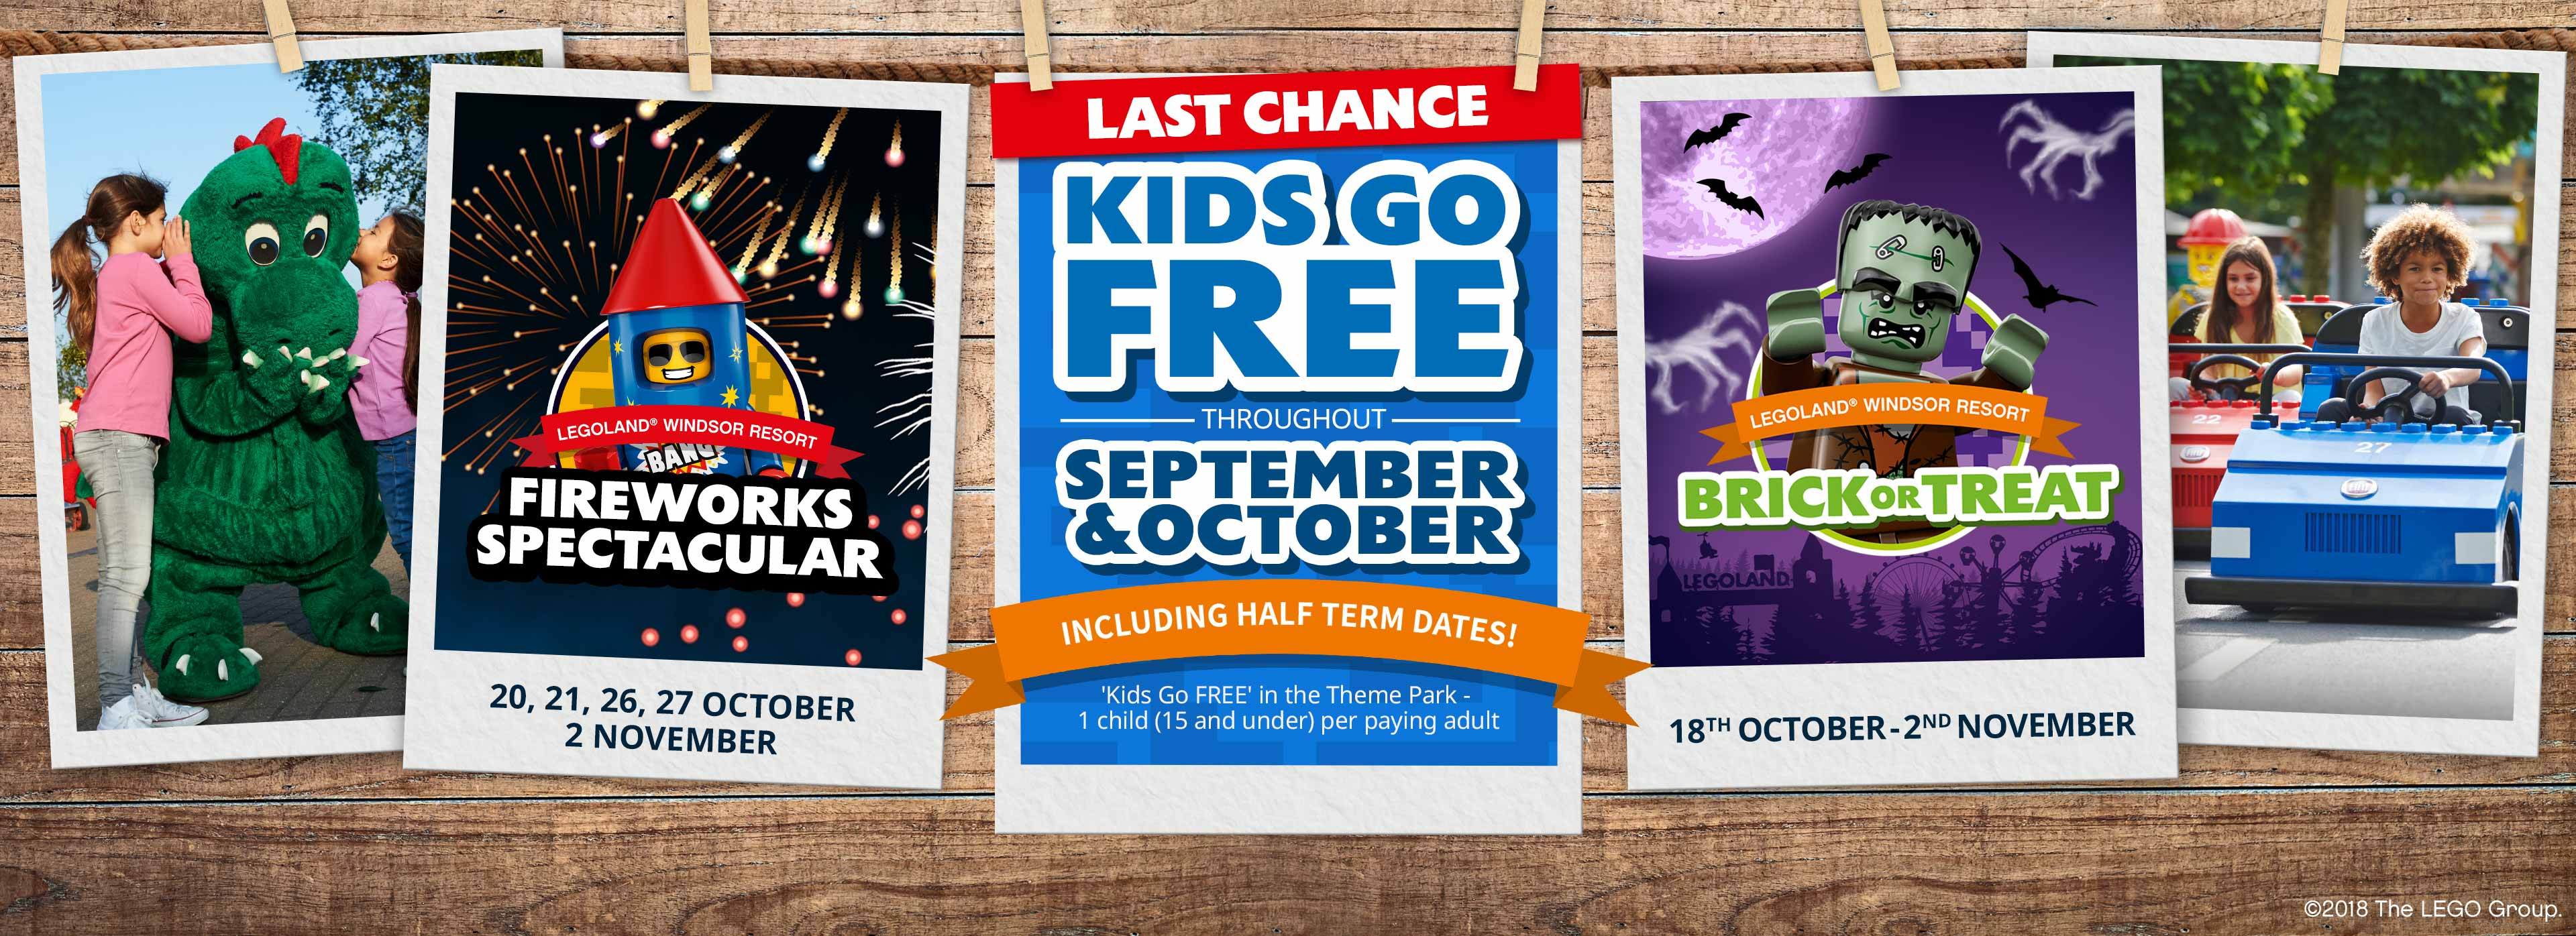 Last chance – Kids Go FREE this September and October – including Halloween dates